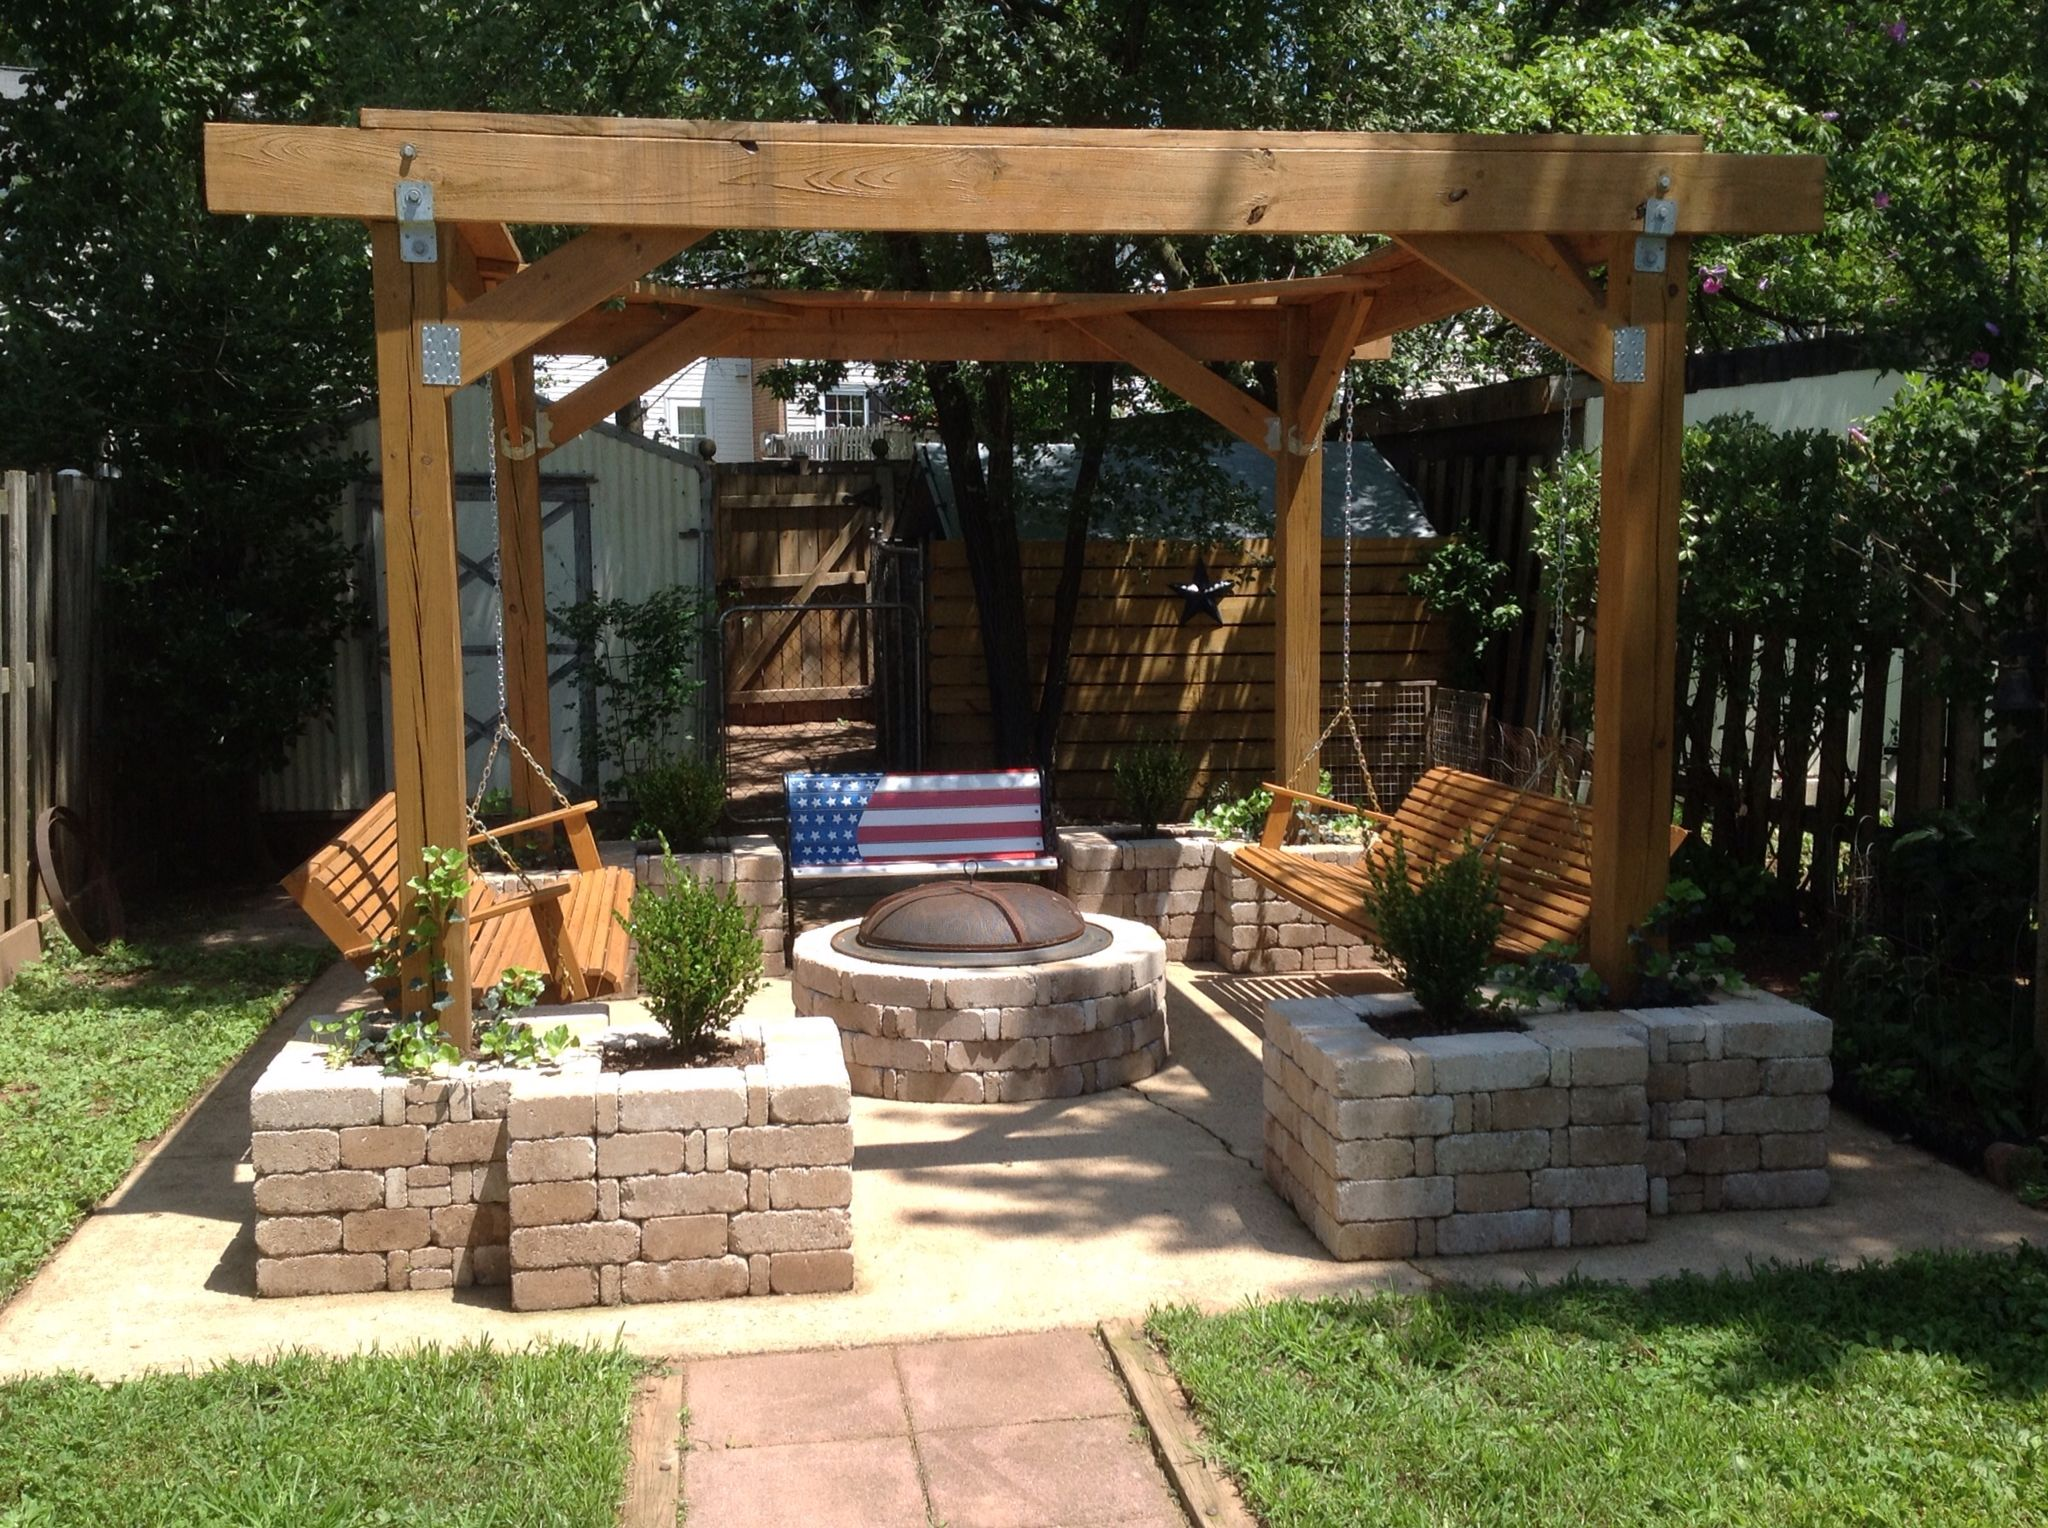 pit stop husband built this pergola with planters and fire pit on old concrete slab in back. Black Bedroom Furniture Sets. Home Design Ideas